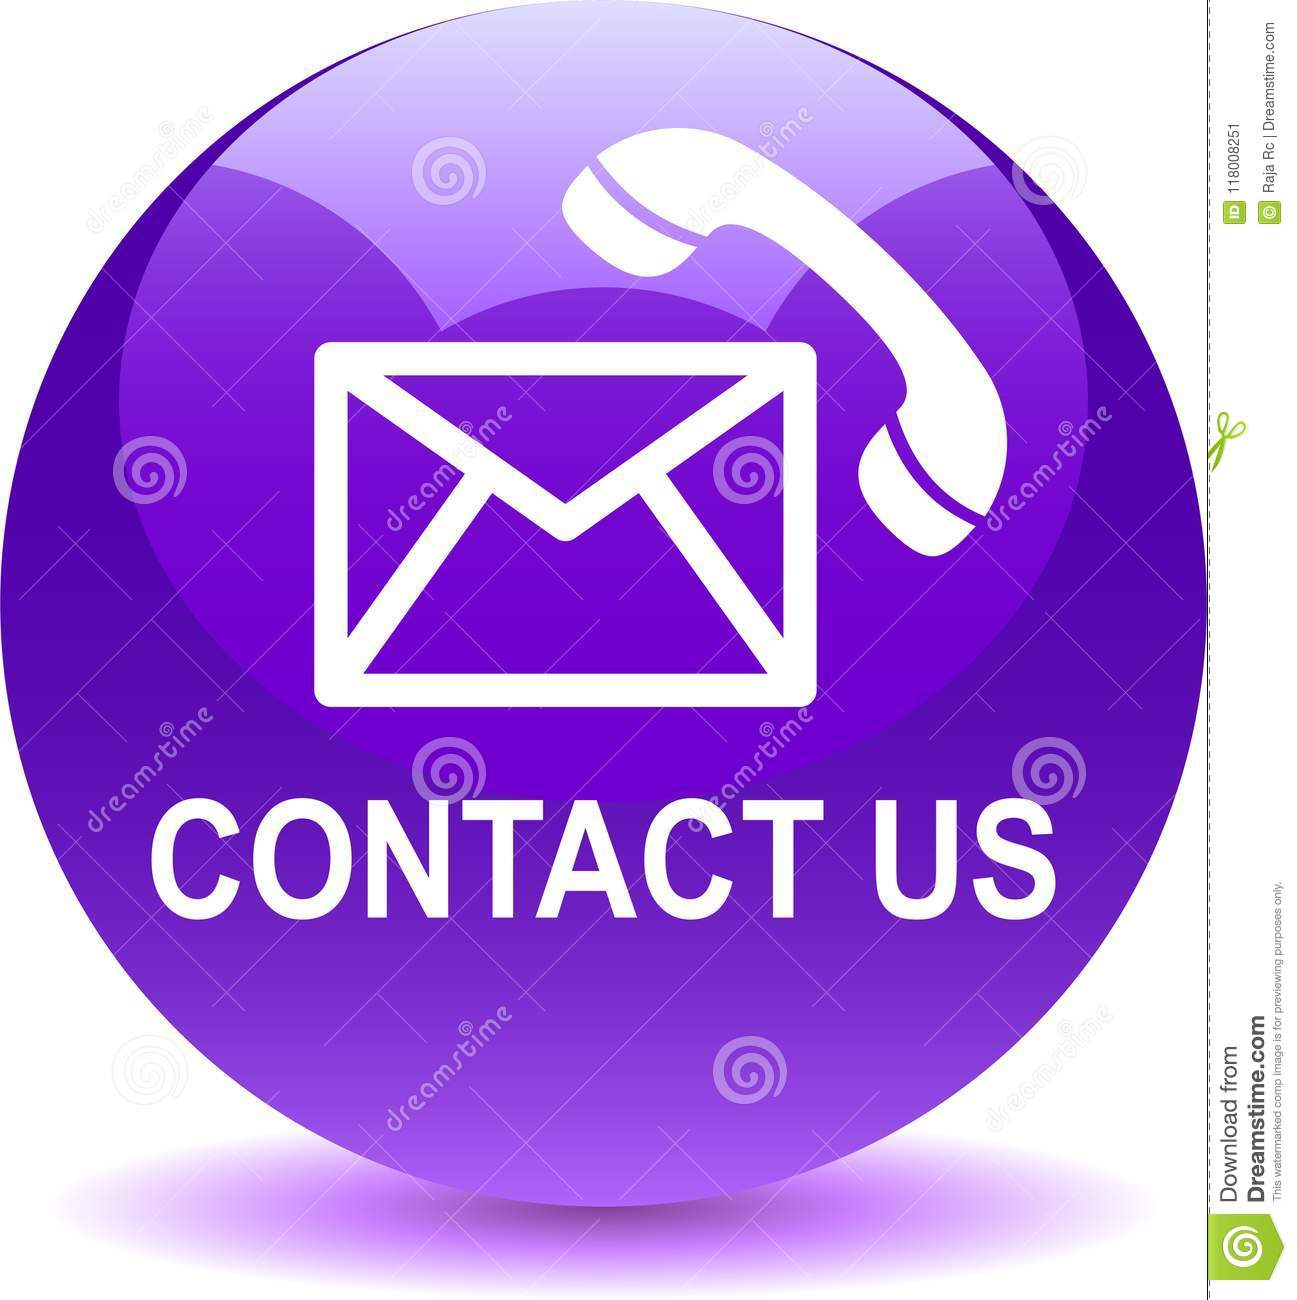 Contact Us Mail Call Icons Violet Stock Vector Illustration Of